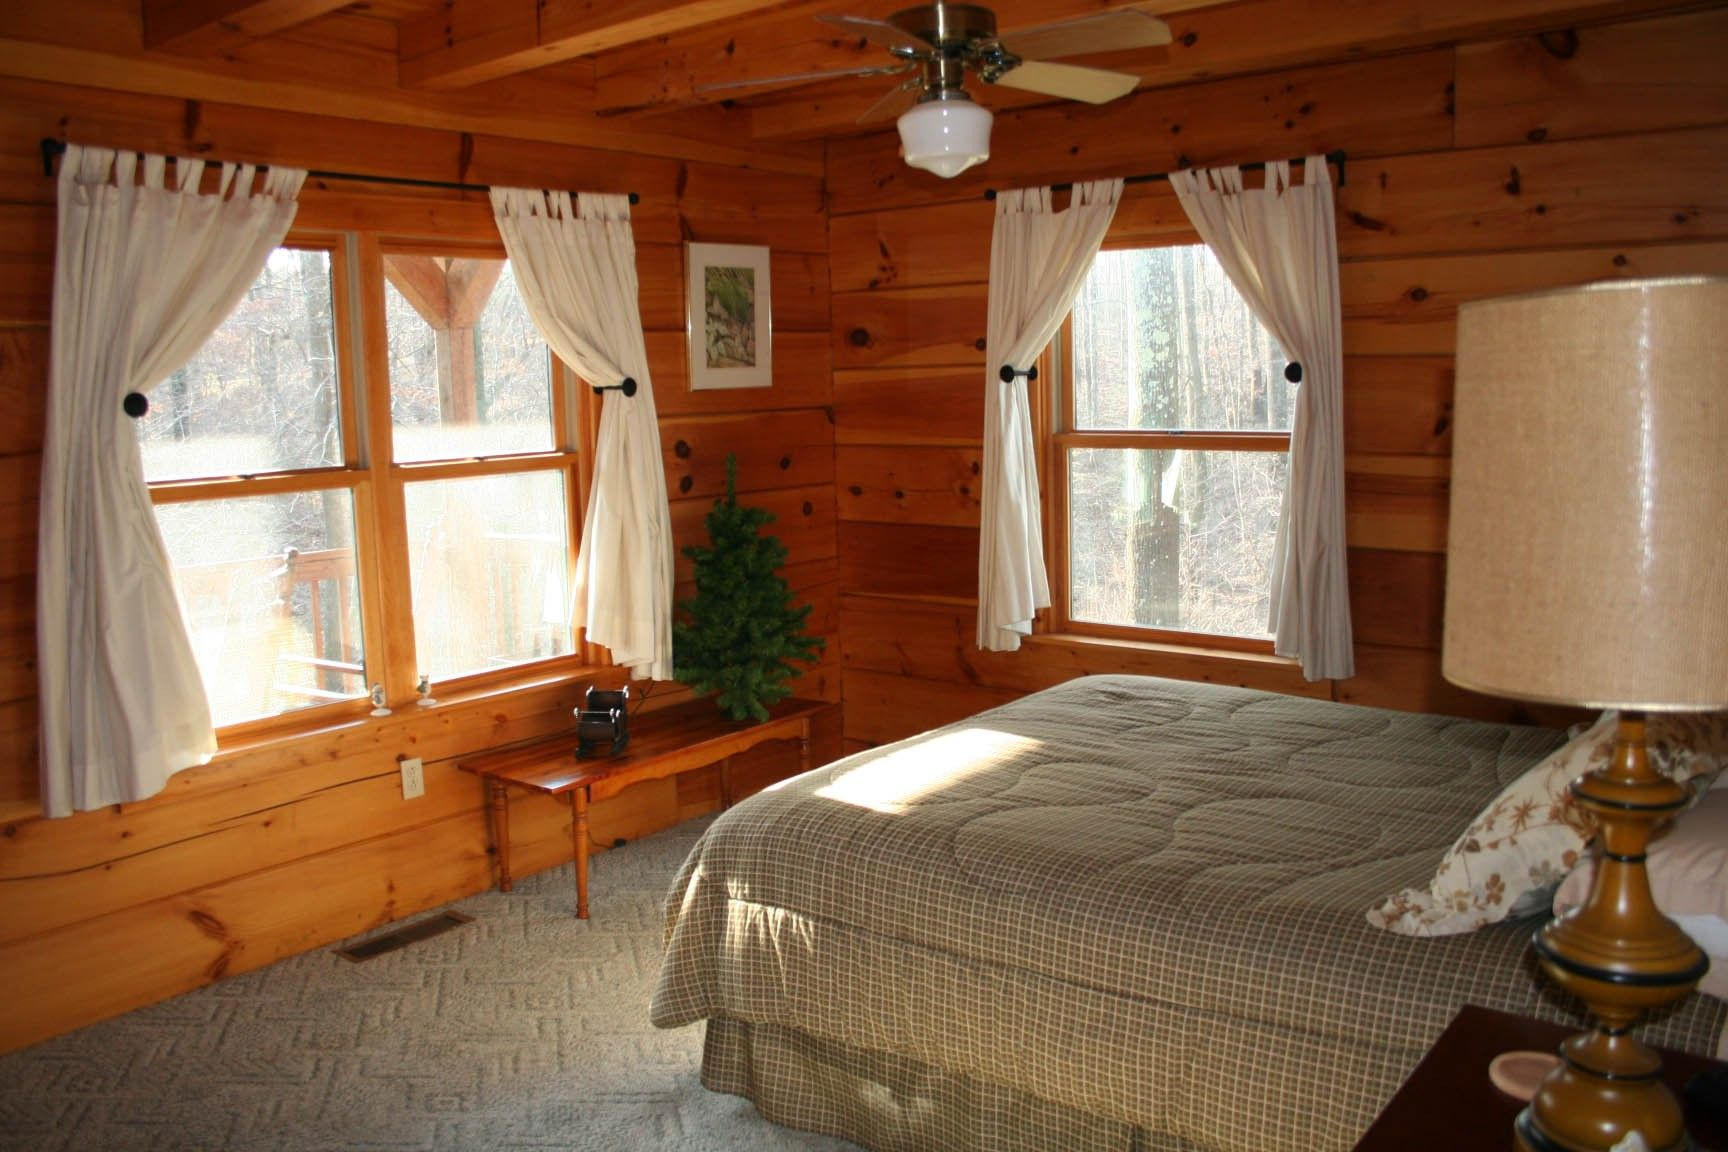 Cabin Bedroom Decorating Ideas Best Of Home Decor Simple | Home ...